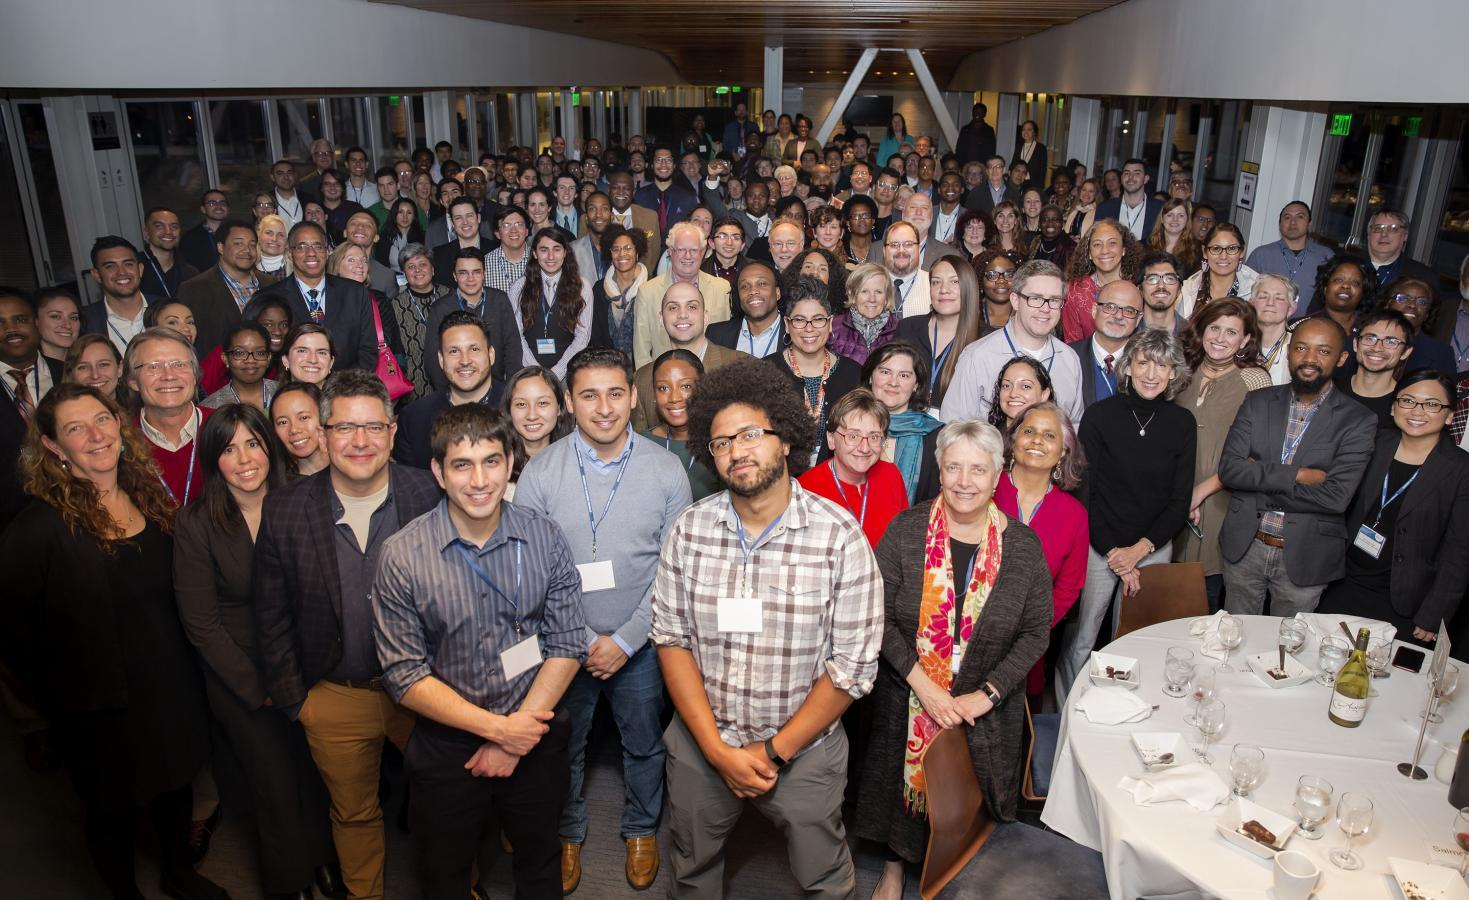 Attendees of the 2018 UC Berkeley led Research Alliance conference